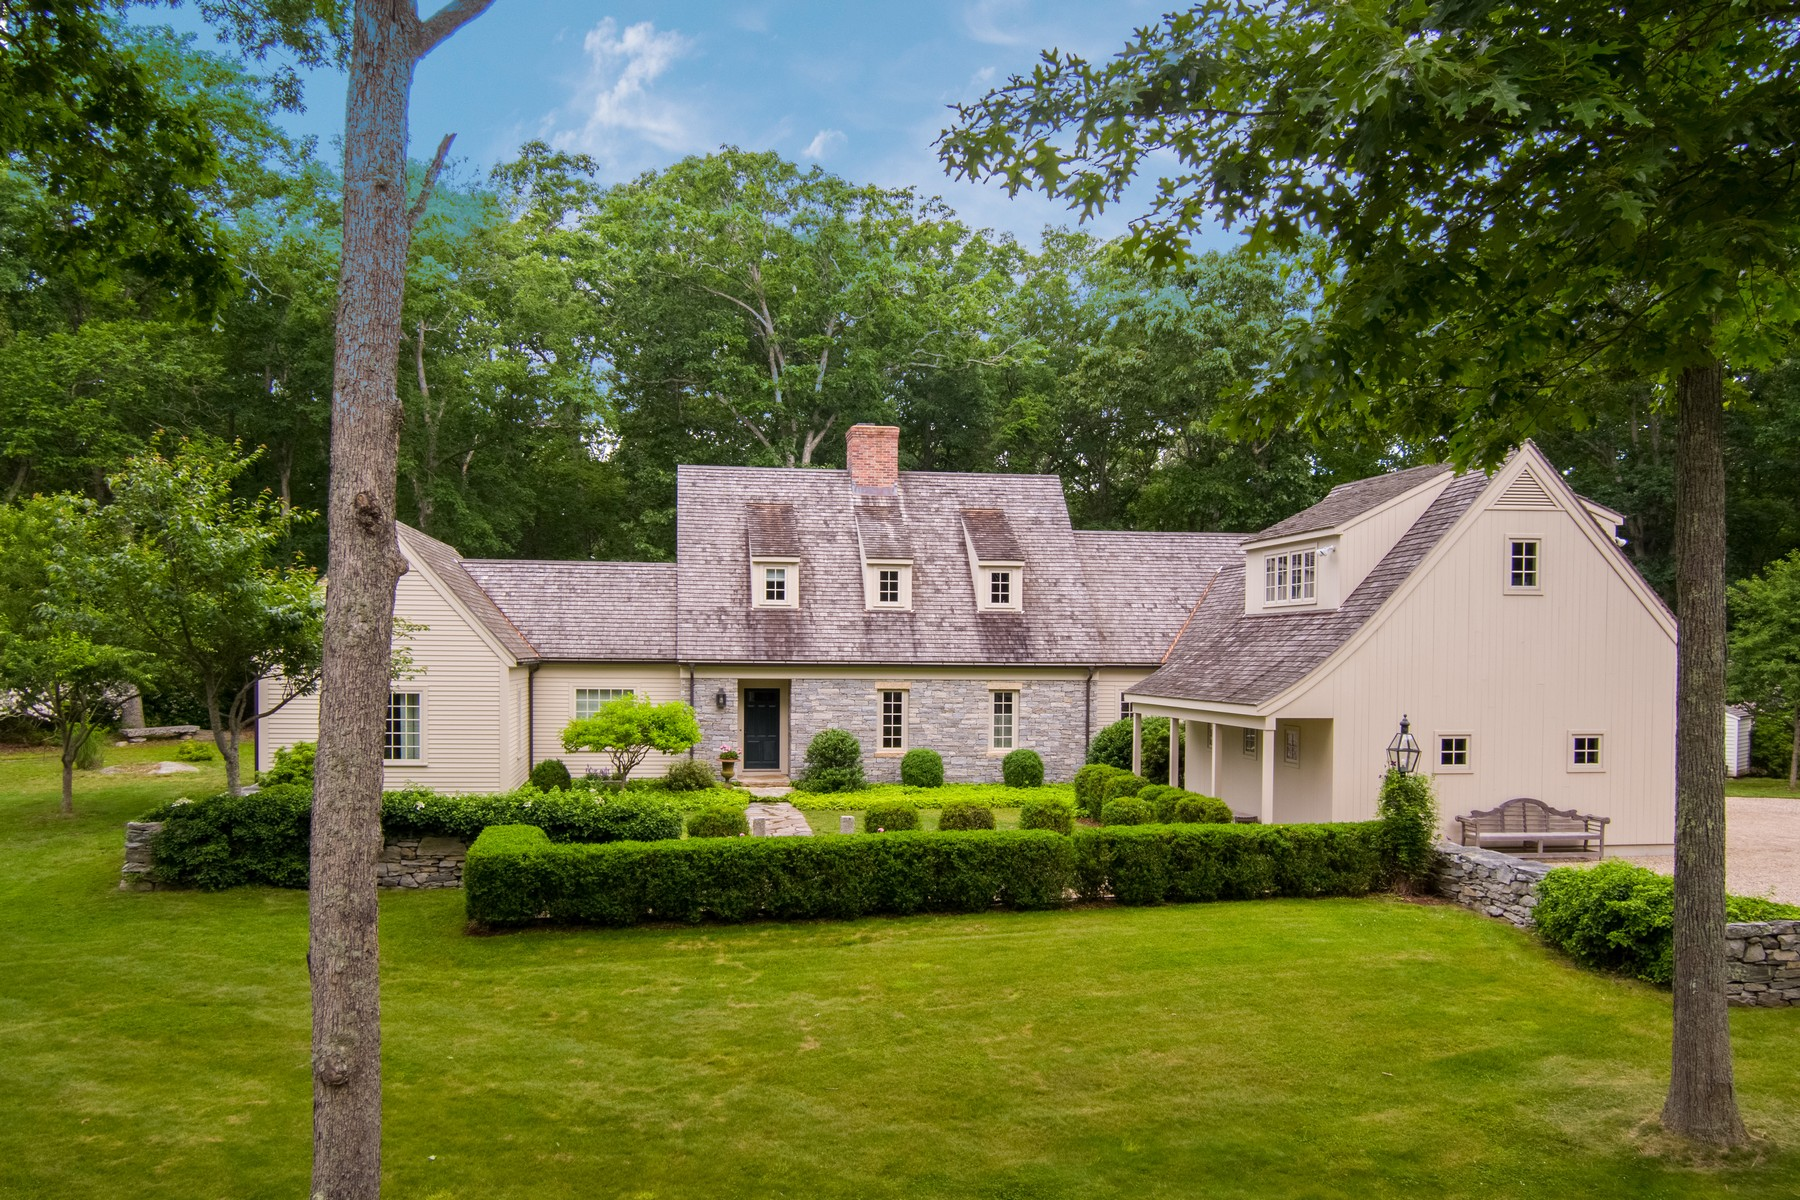 Single Family Homes のために 売買 アット A Sophisticated Country Home 30 Josie Perkins Lane, Lyme, コネチカット 06371 アメリカ